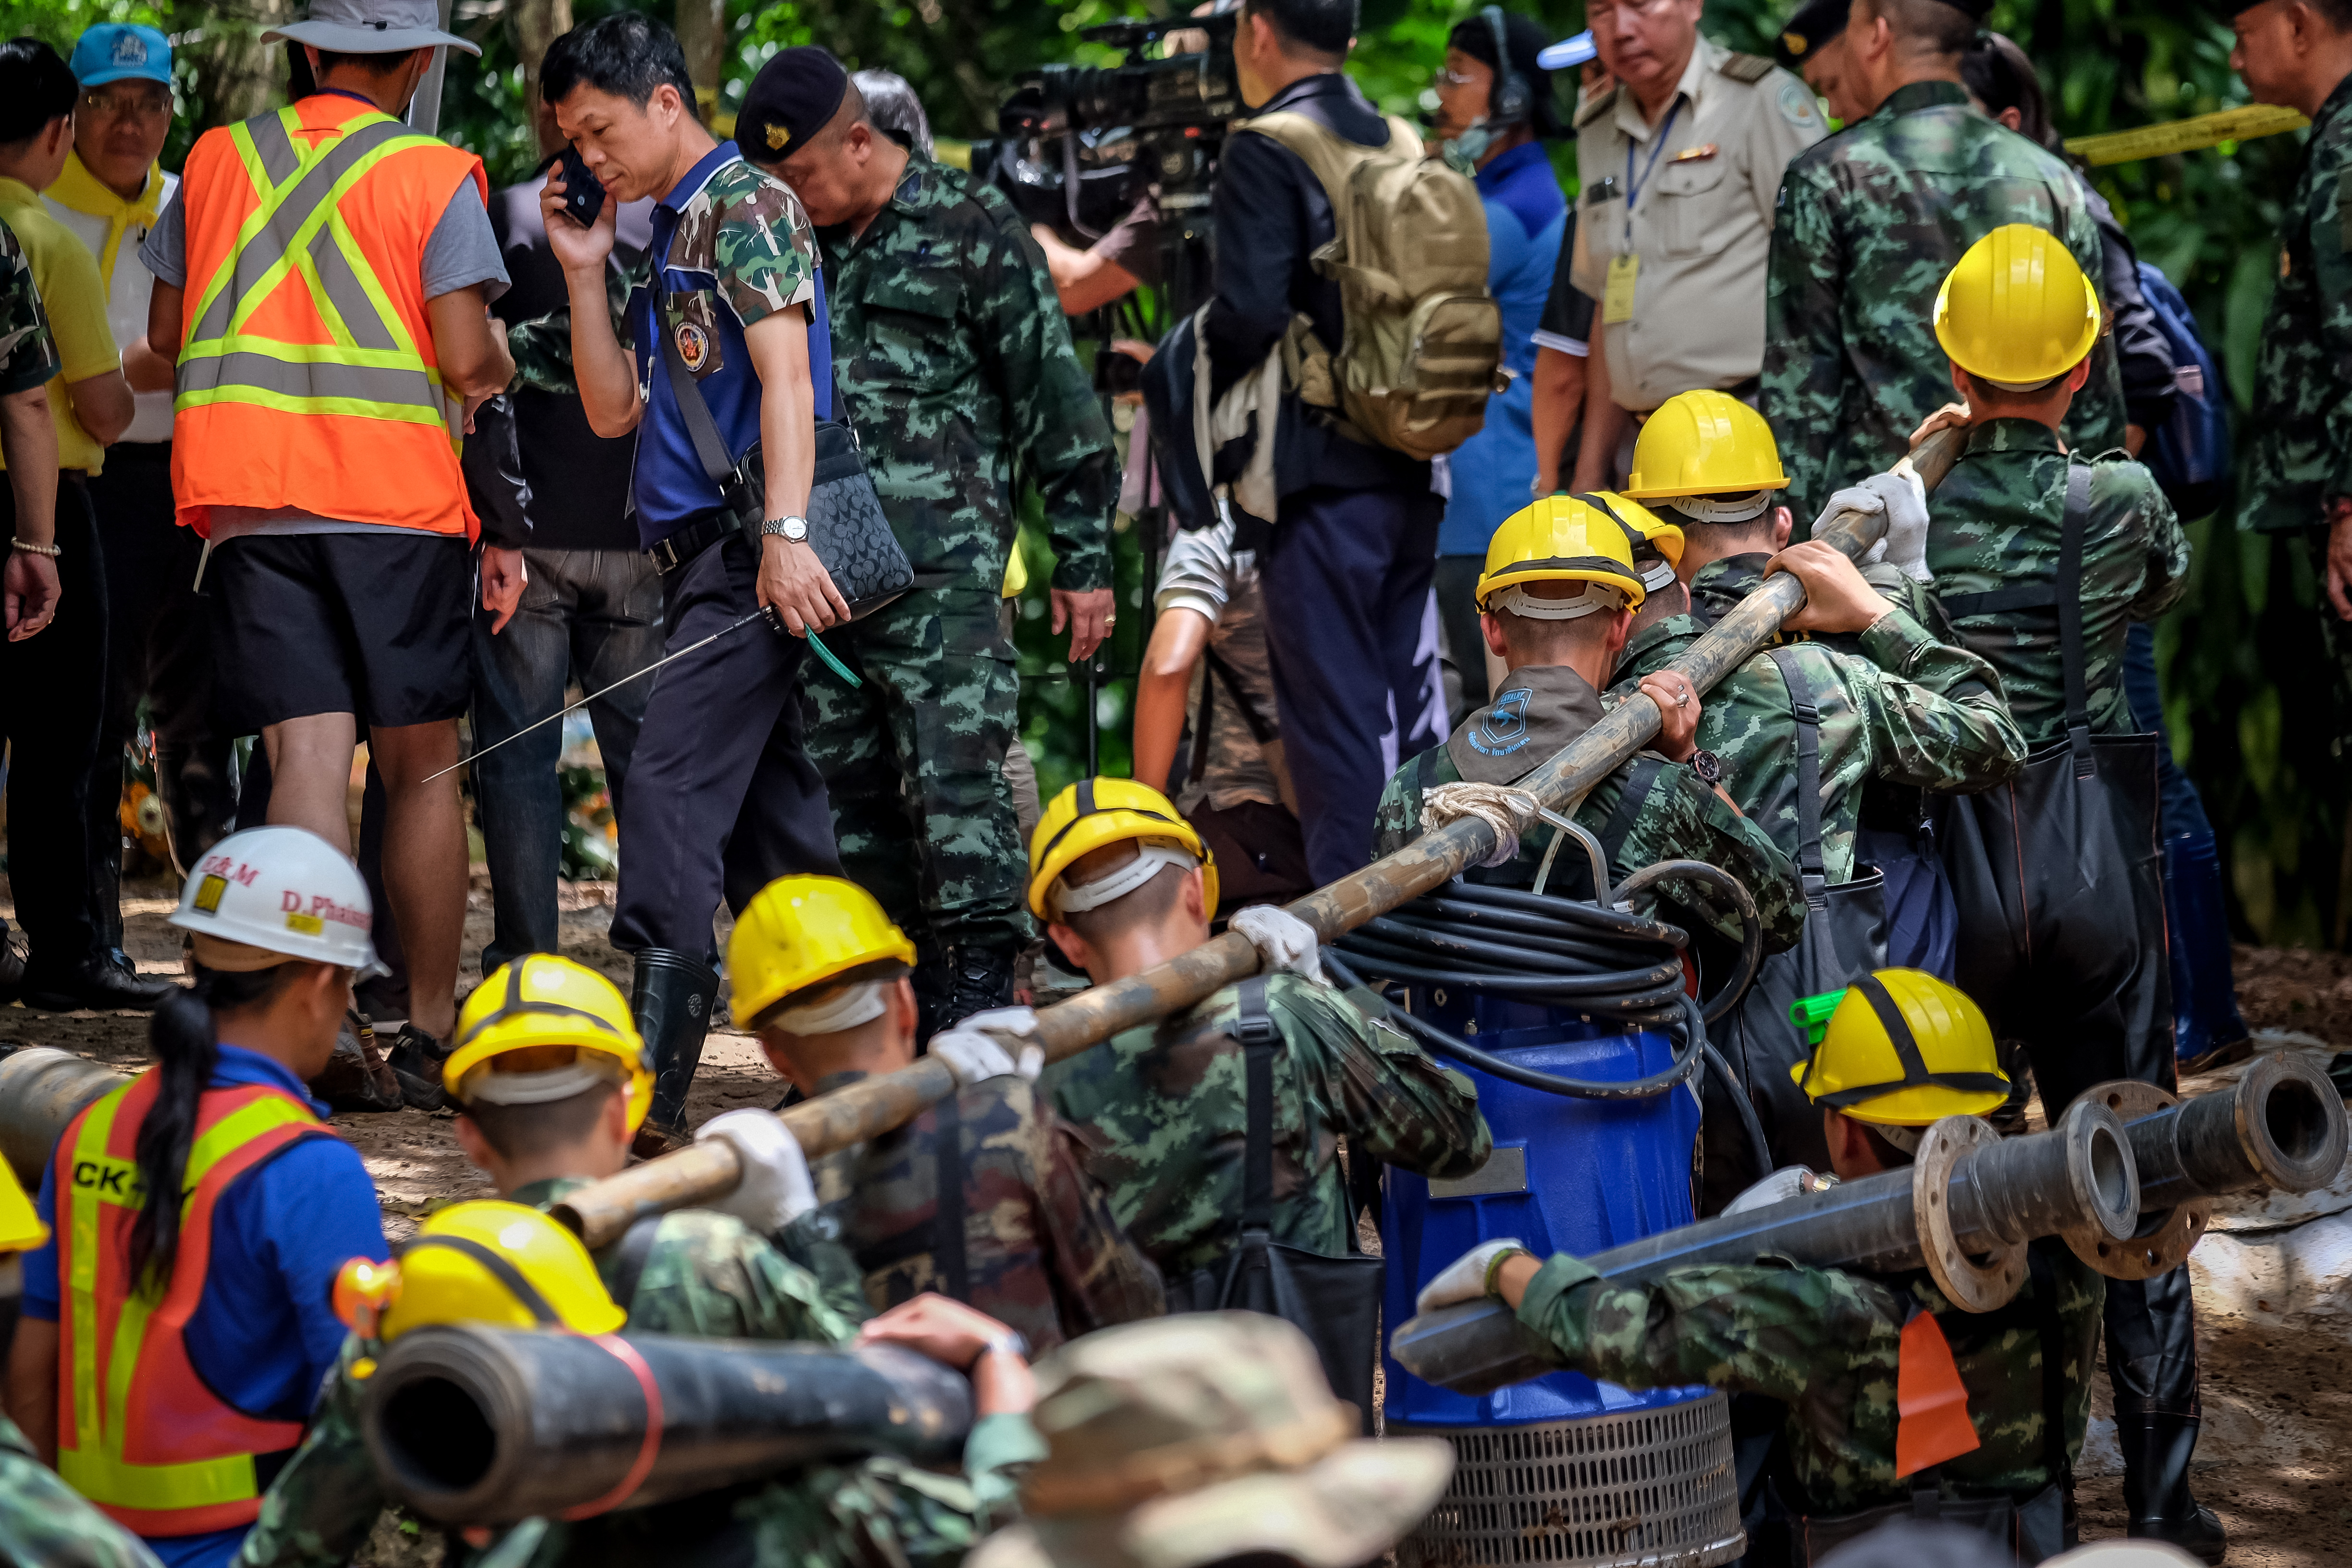 Military carry equipment into the Tham Luang Nang Non cave to continue the rescue operation on July 04, 2018 in Chiang Rai, Thailand. (Getty Images)